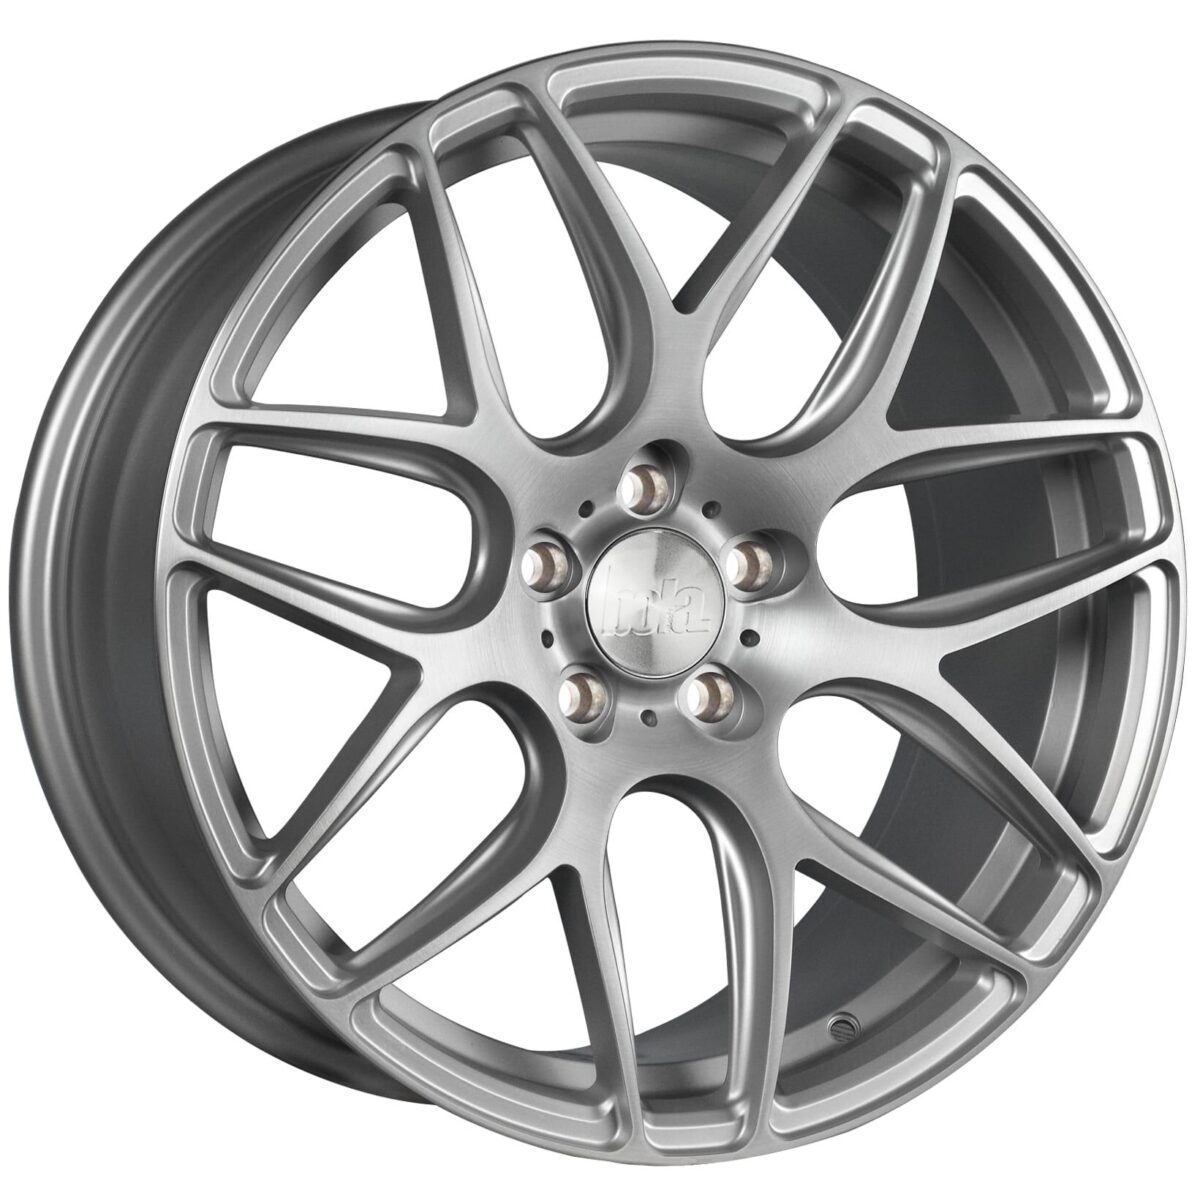 "18"" BOLA B8R Wheels - Matt Silver Brushed Polished - VW / Audi / Mercedes - 5x112"